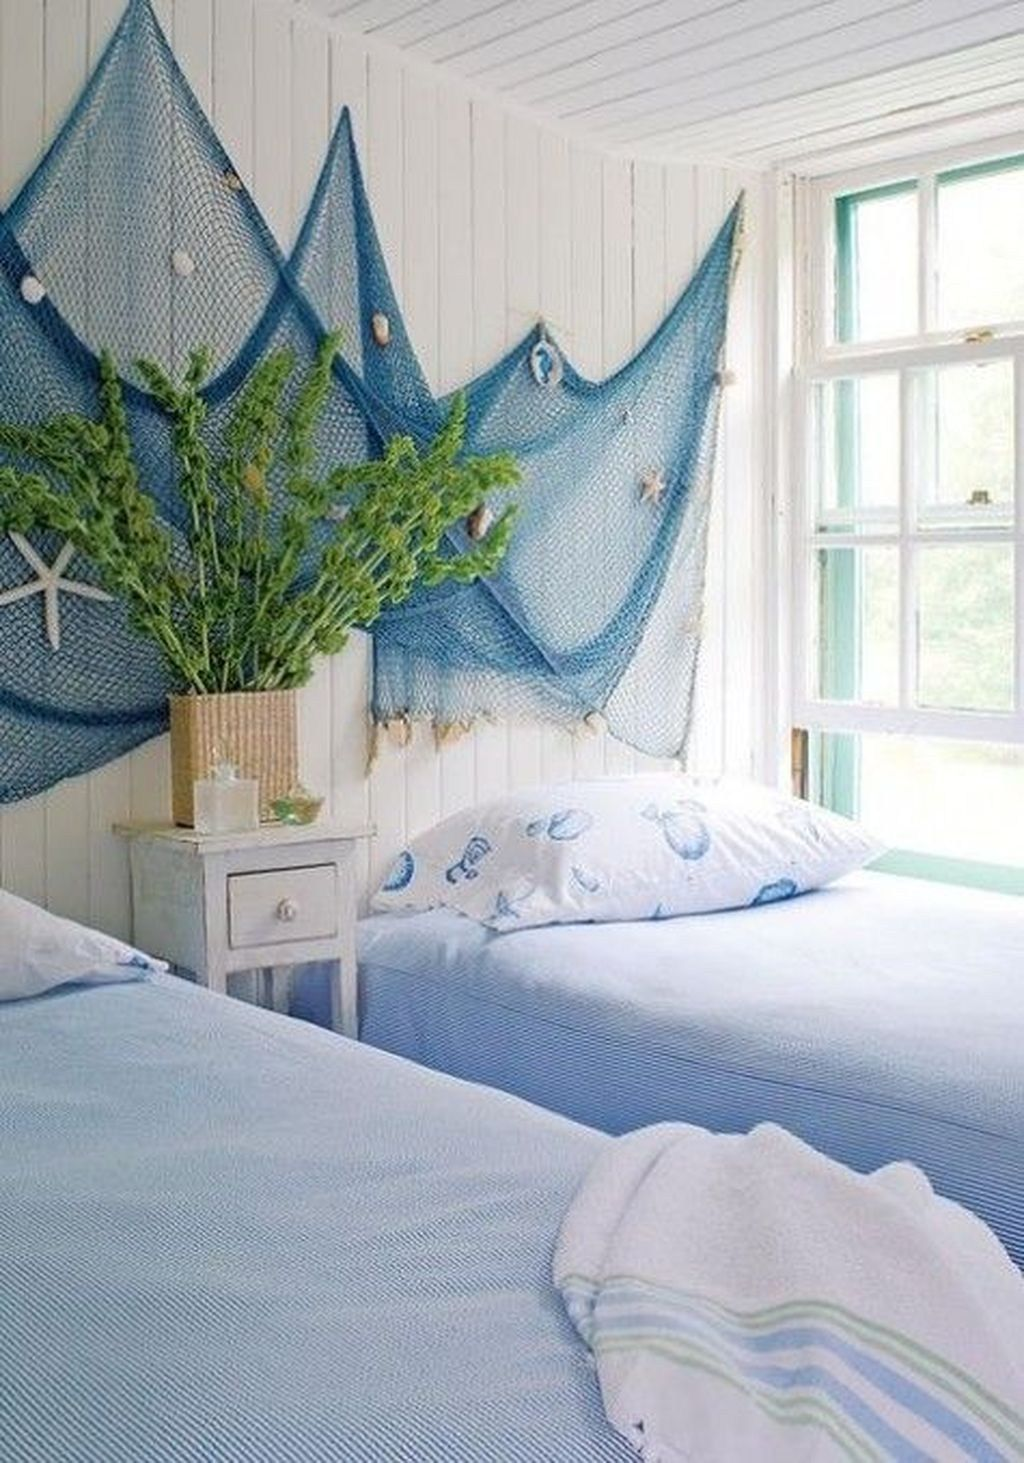 36 Lovely Lake Bedroom Decorating Ideas With Images Beach